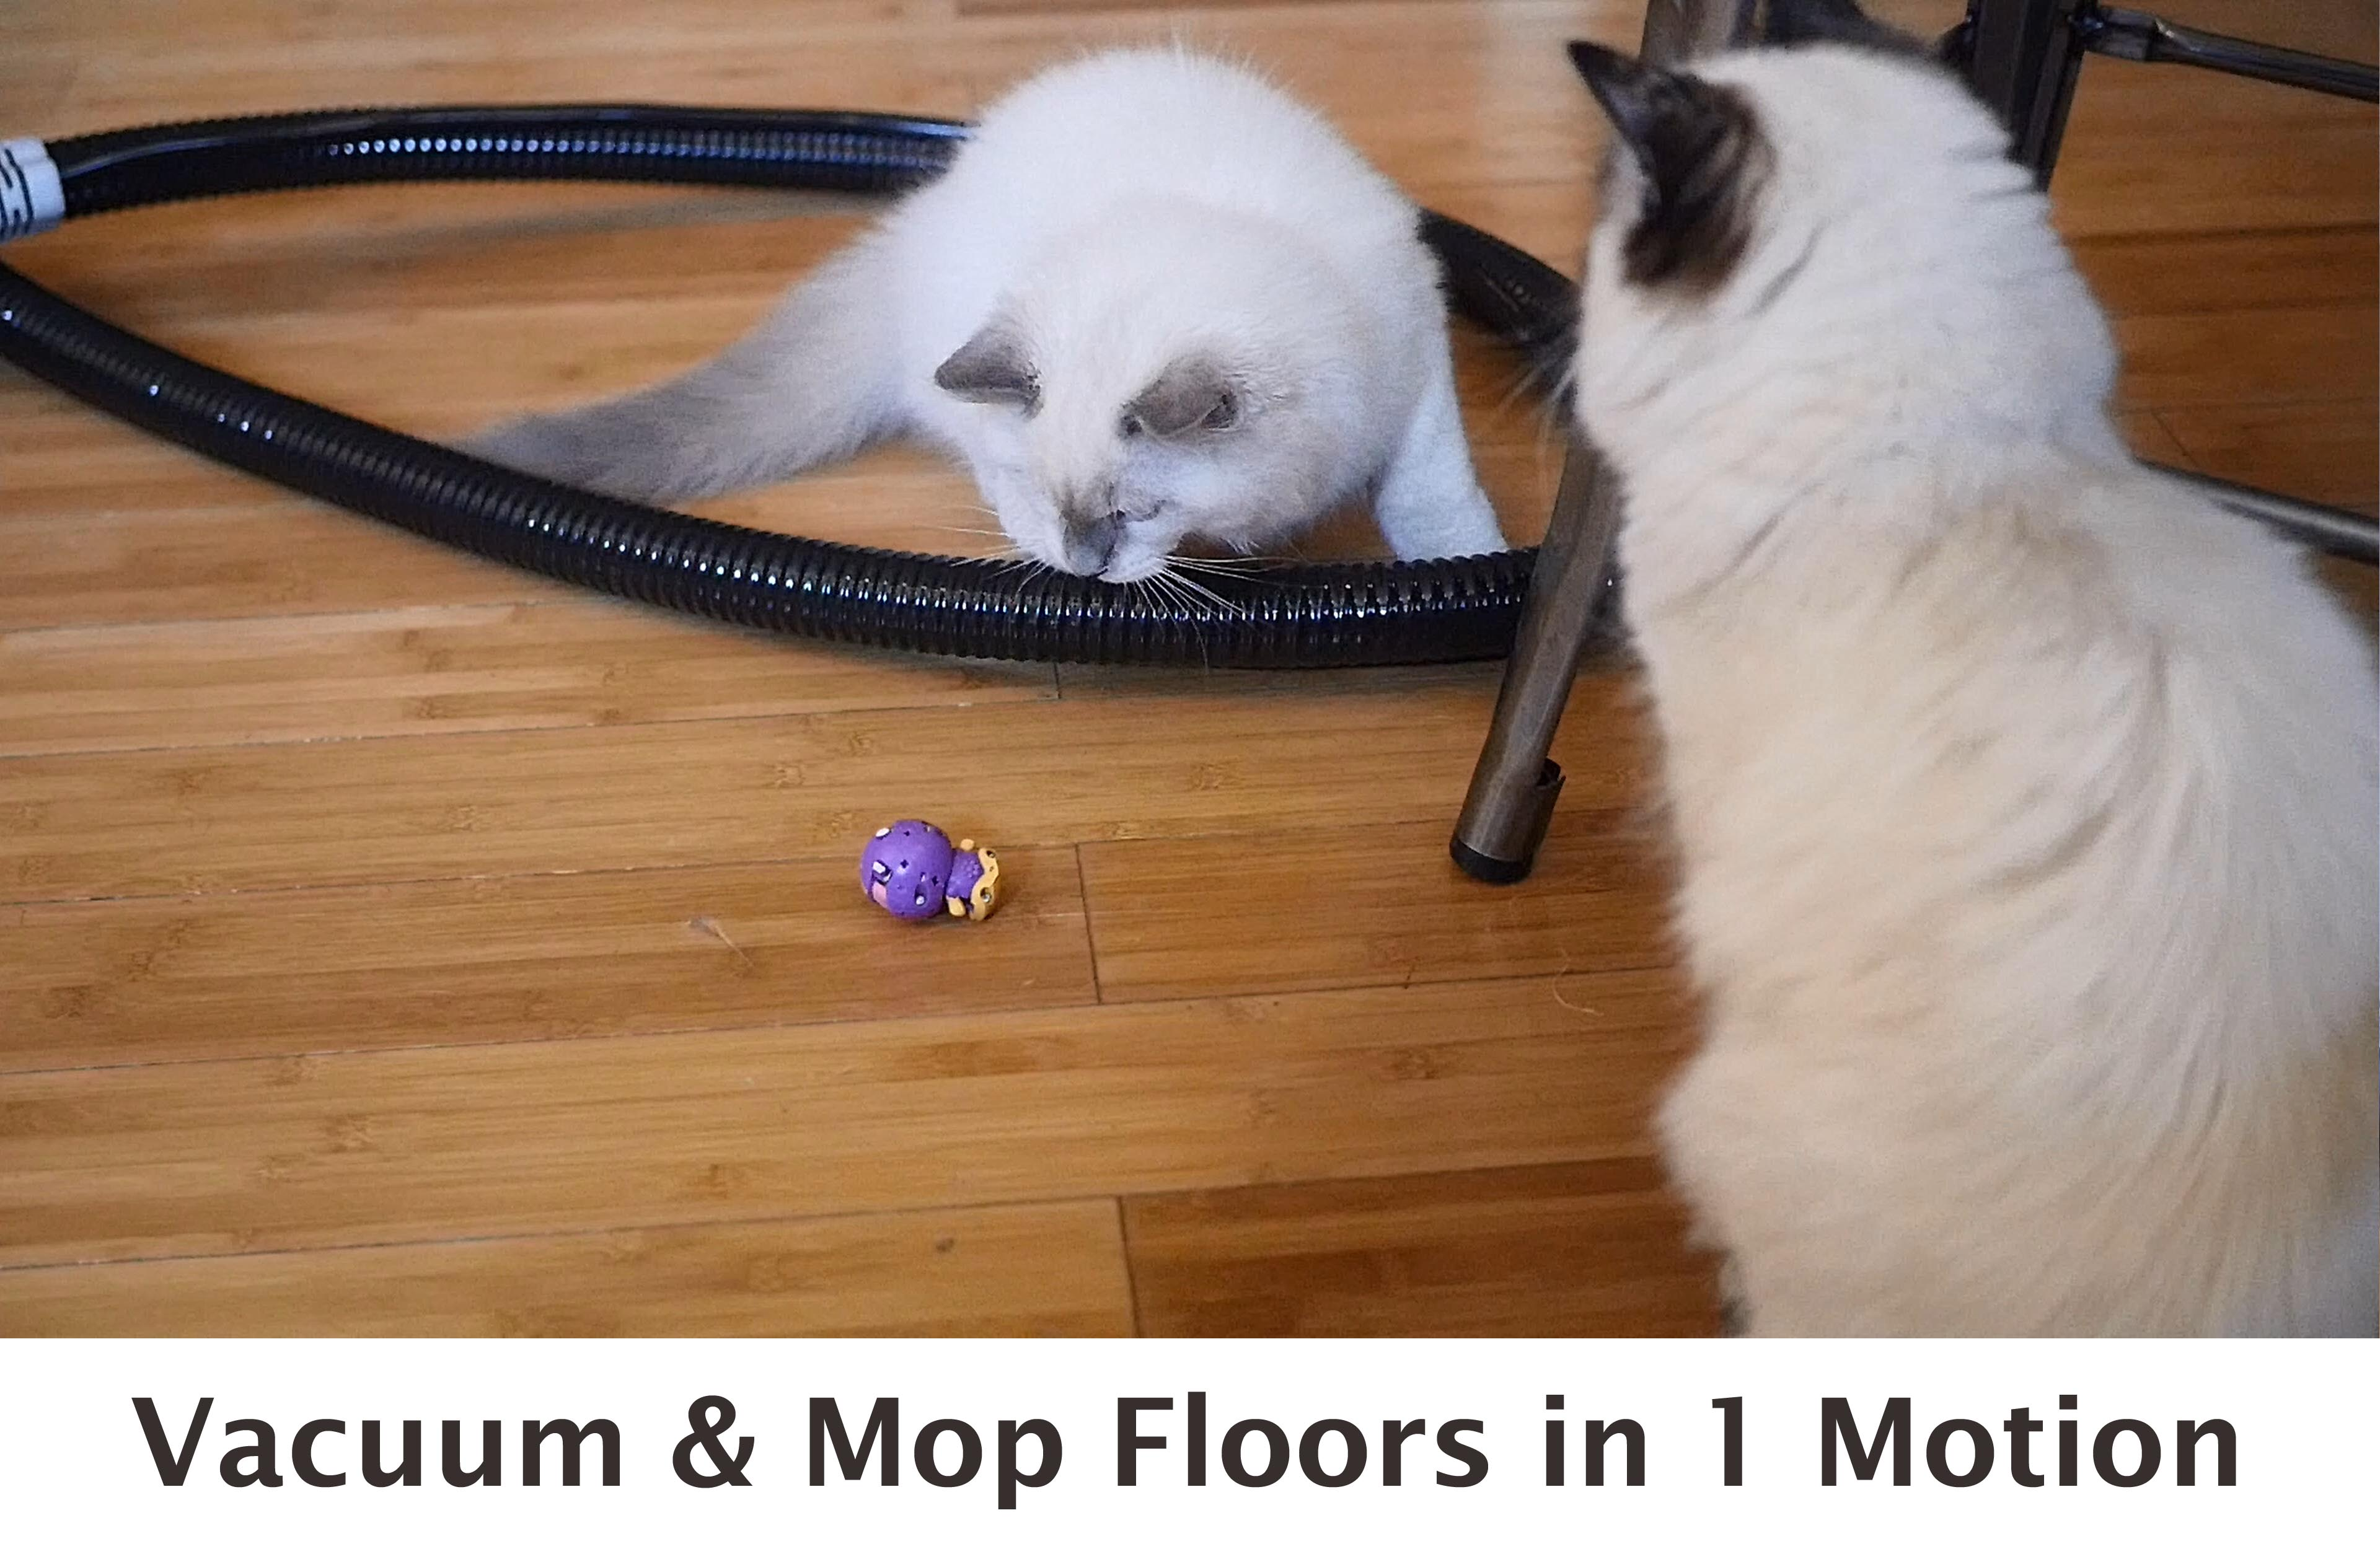 Two cats playing with toy near steam rover